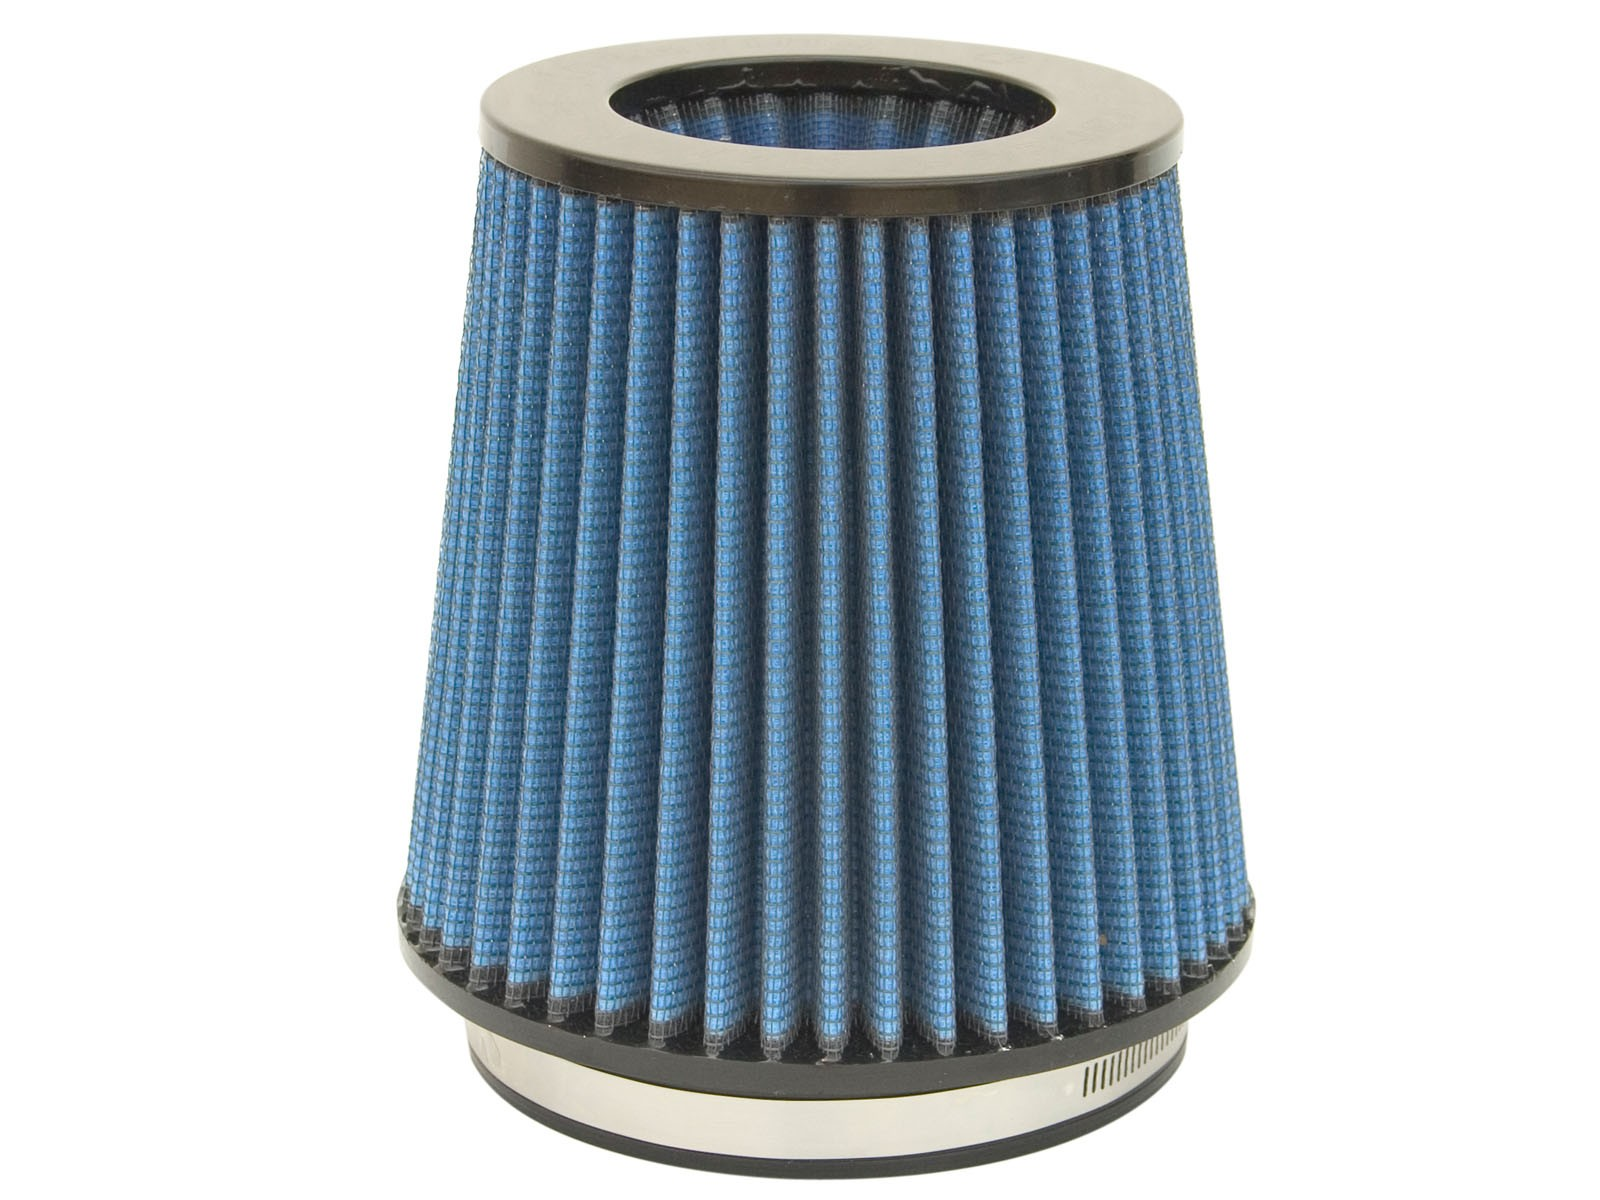 aFe POWER 24-91031 Magnum FLOW Pro 5R Air Filter